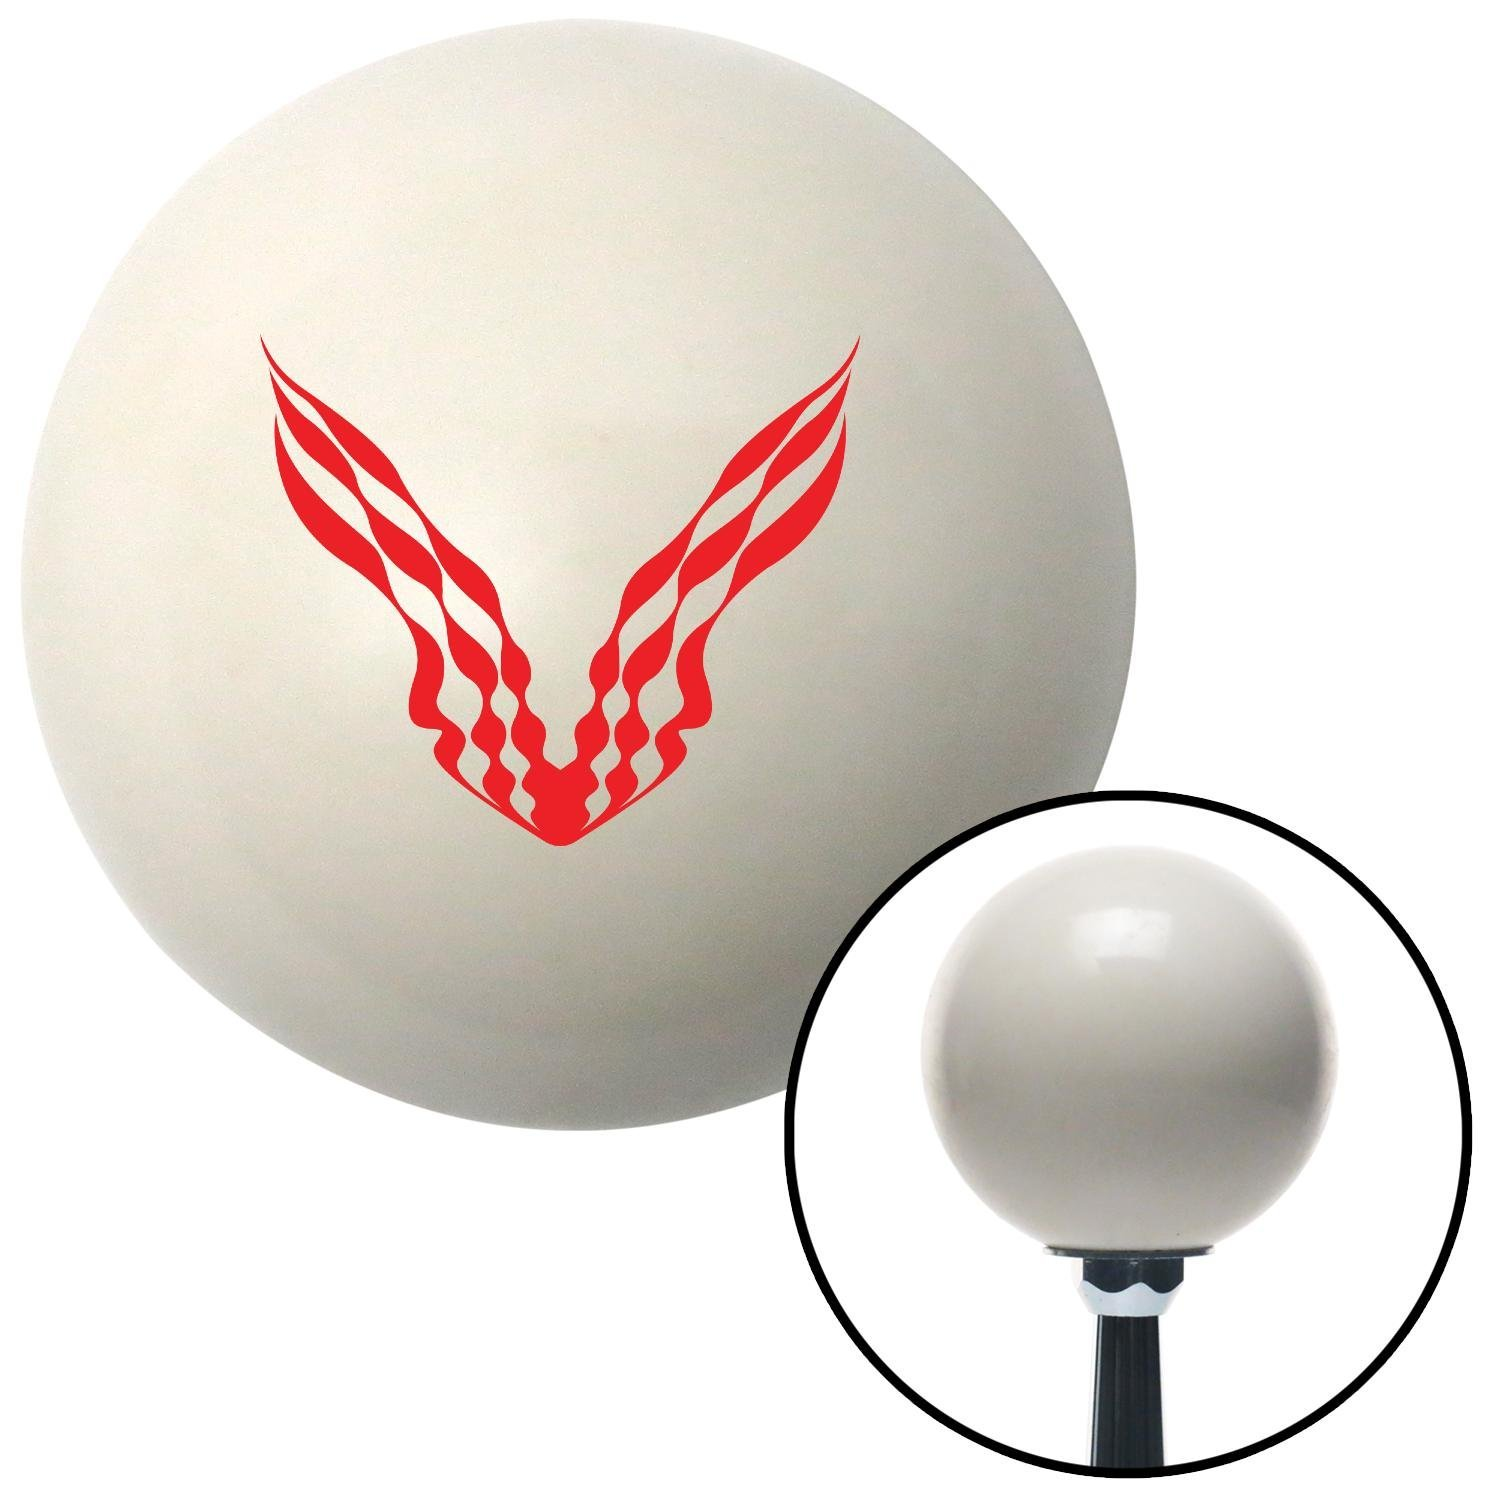 Red Checkered Racing Wings American Shifter 30089 Ivory Shift Knob with 16mm x 1.5 Insert